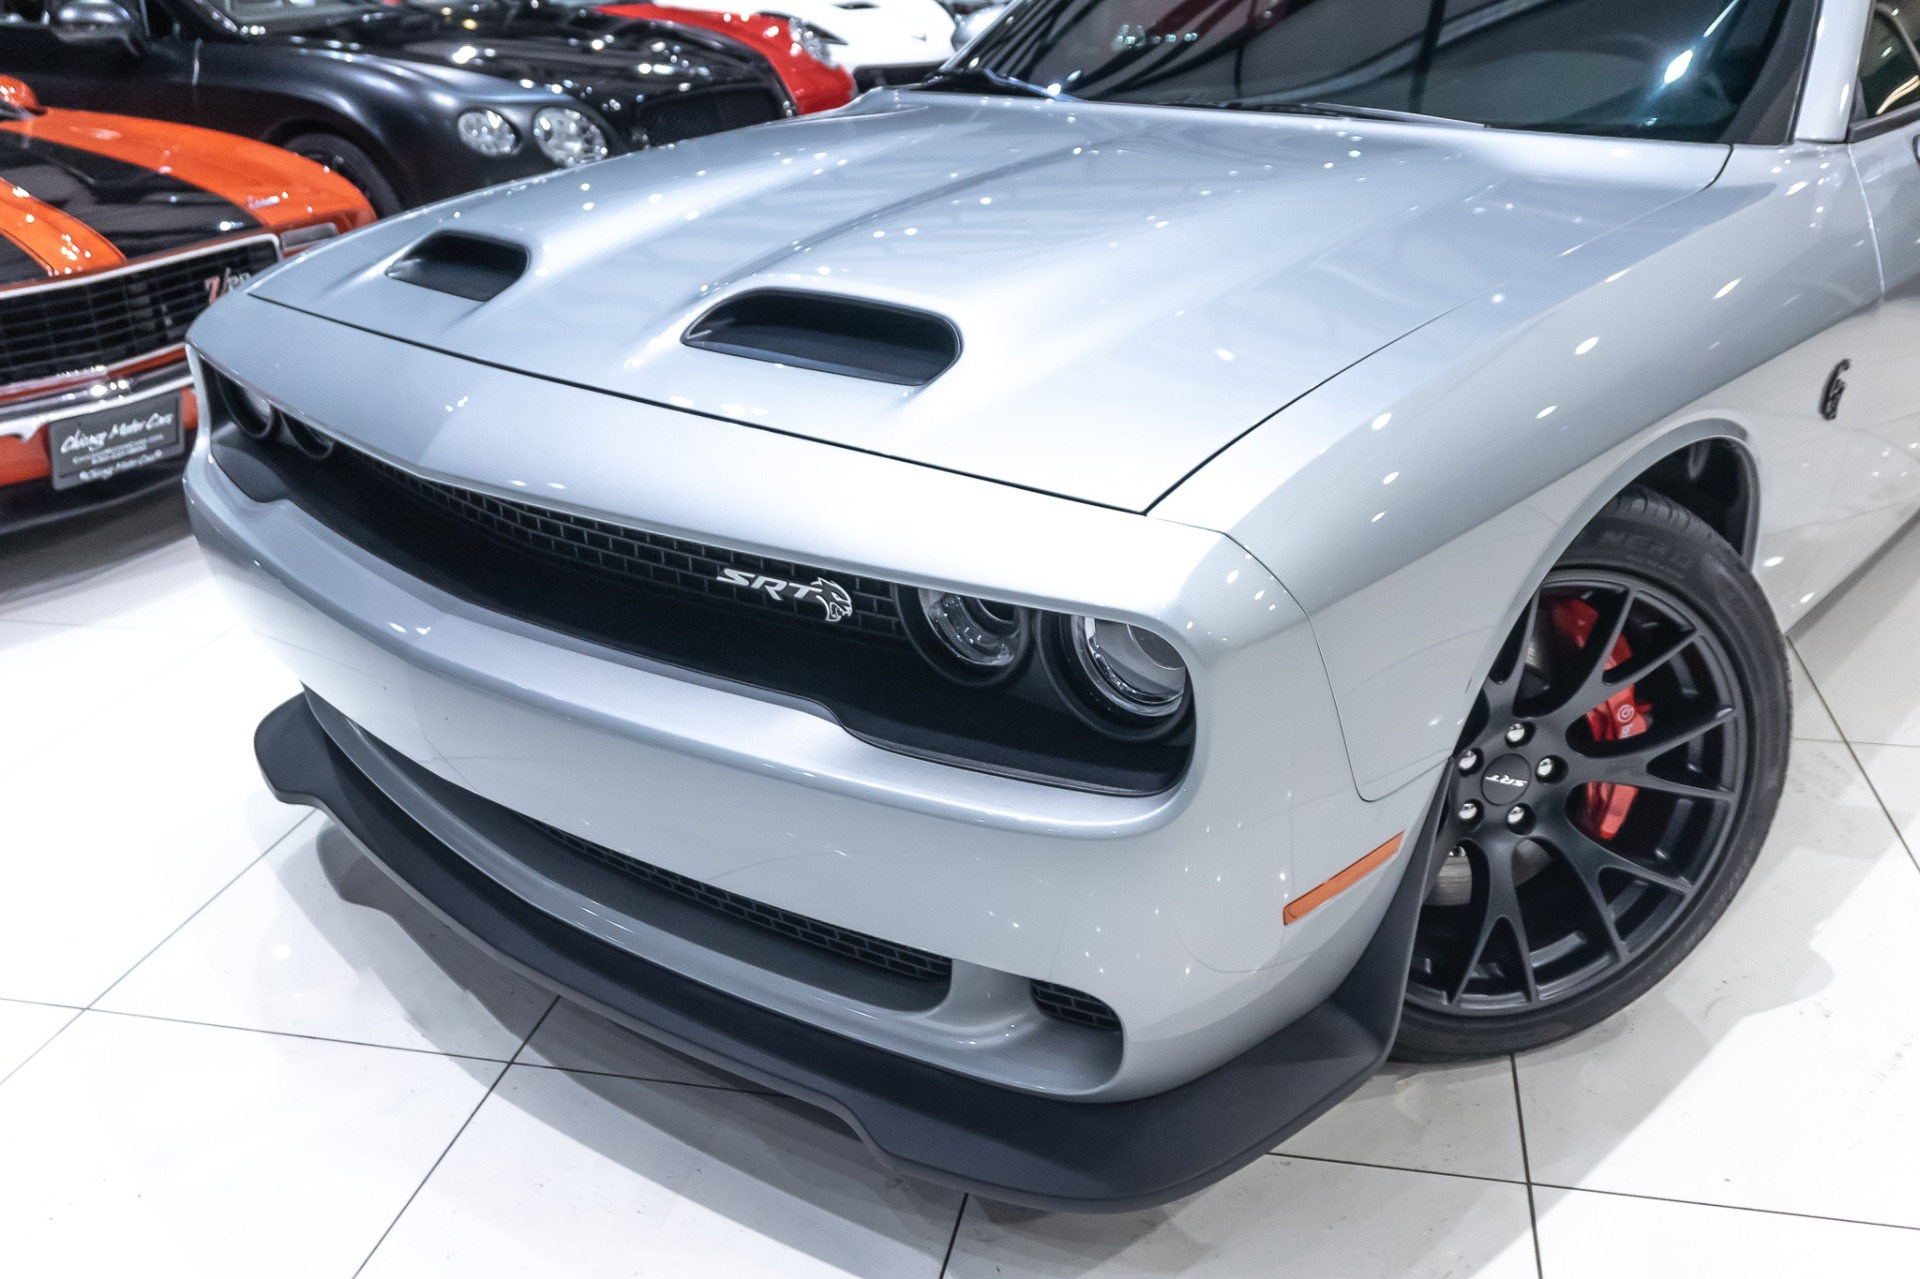 Used-2019-Dodge-Challenger-SRT-Hellcat-DRIVER-CONVENIENCE-PLUS-PACKAGE-MANUAL-TRANSMISSION-SPOILER